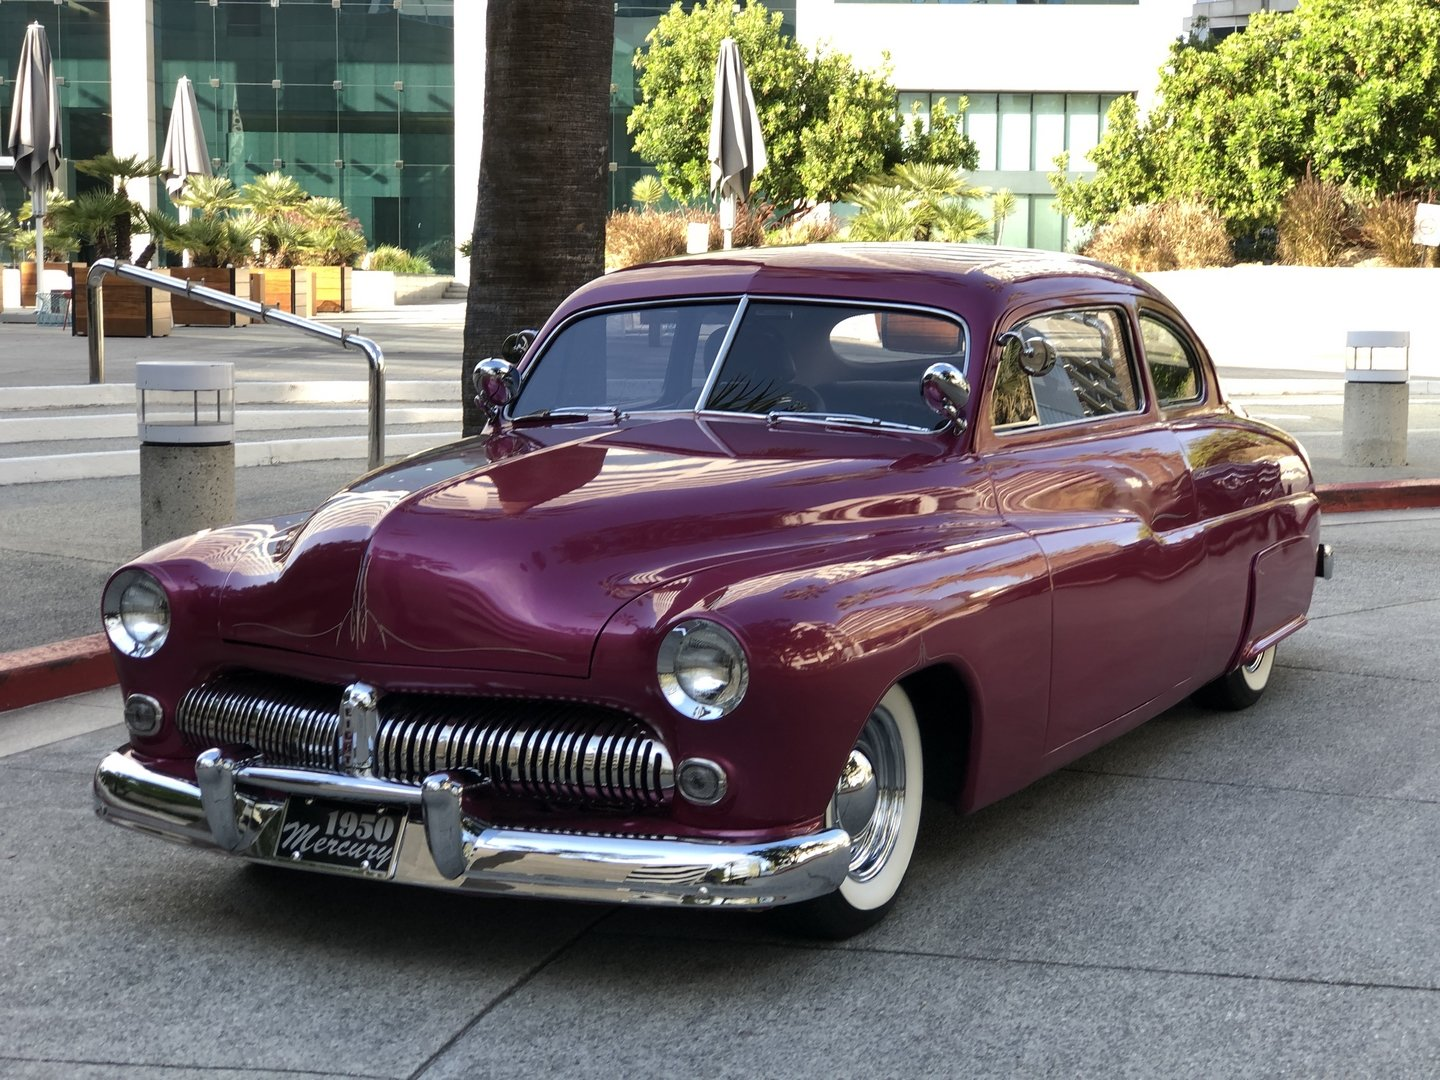 1950 MERCURY CUSTOM COUPE For Sale (picture 1 of 6)